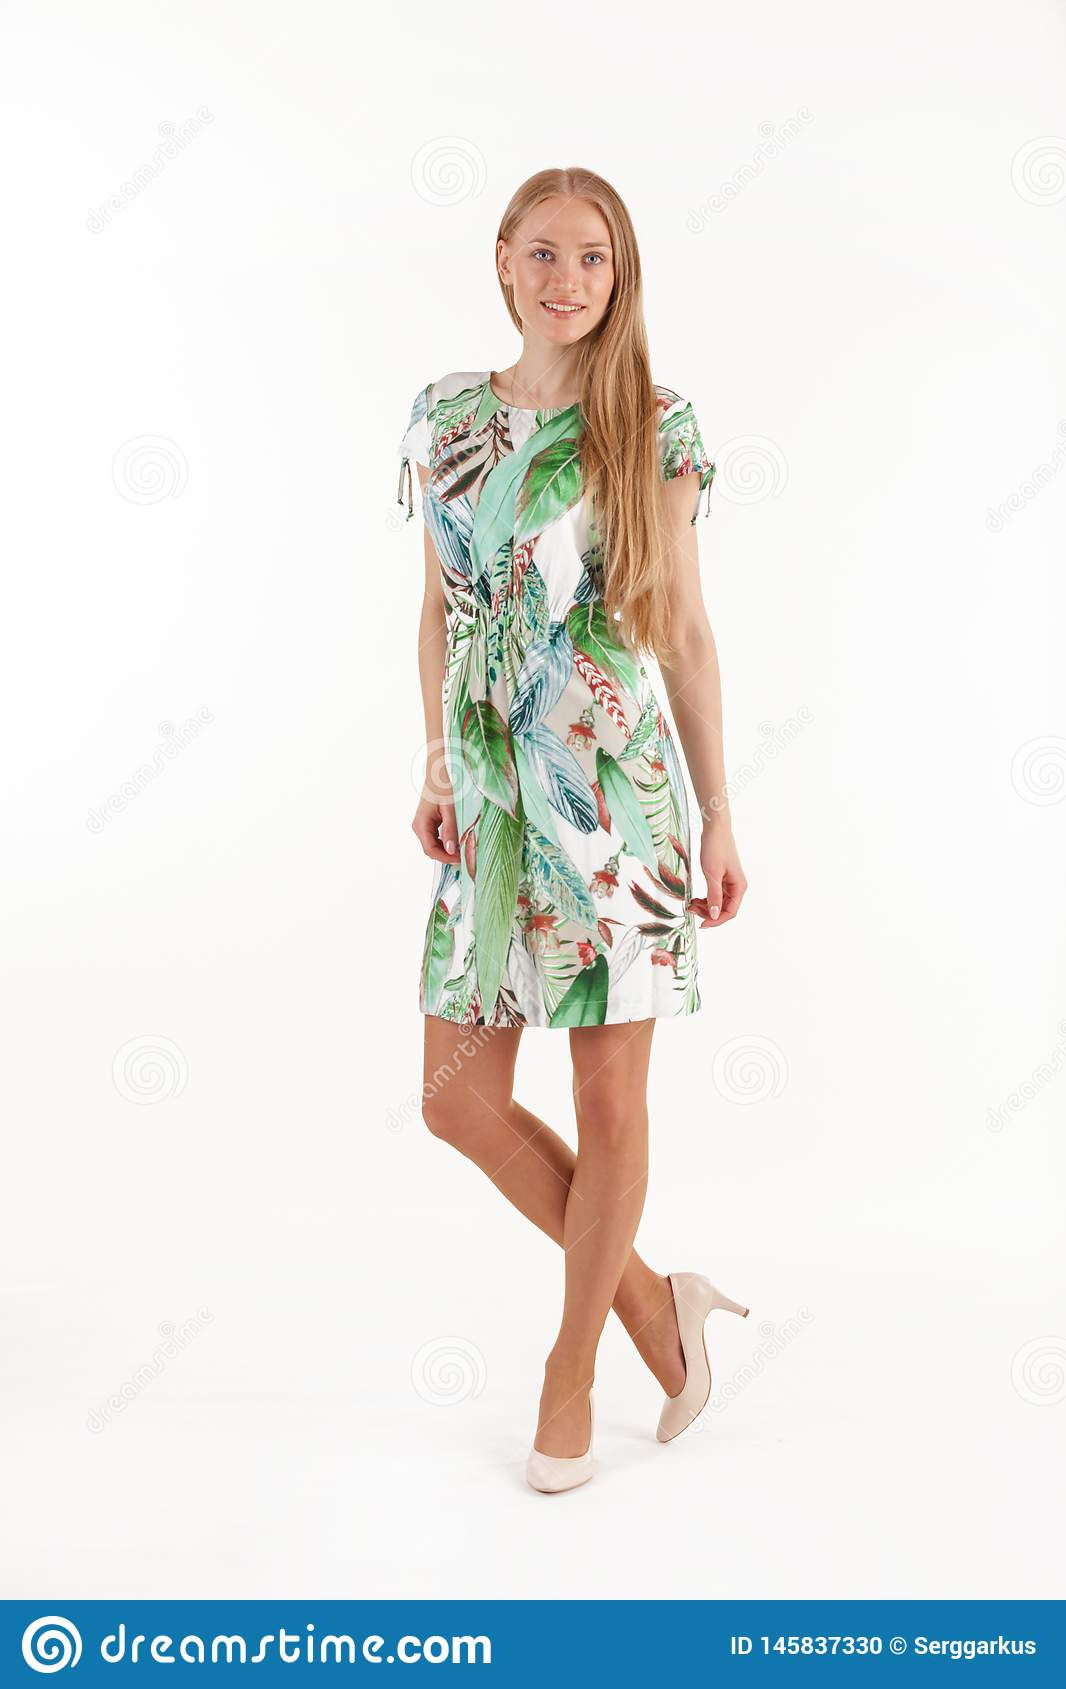 Beautiful young blonde woman in white dress with tropical print isolated on white background